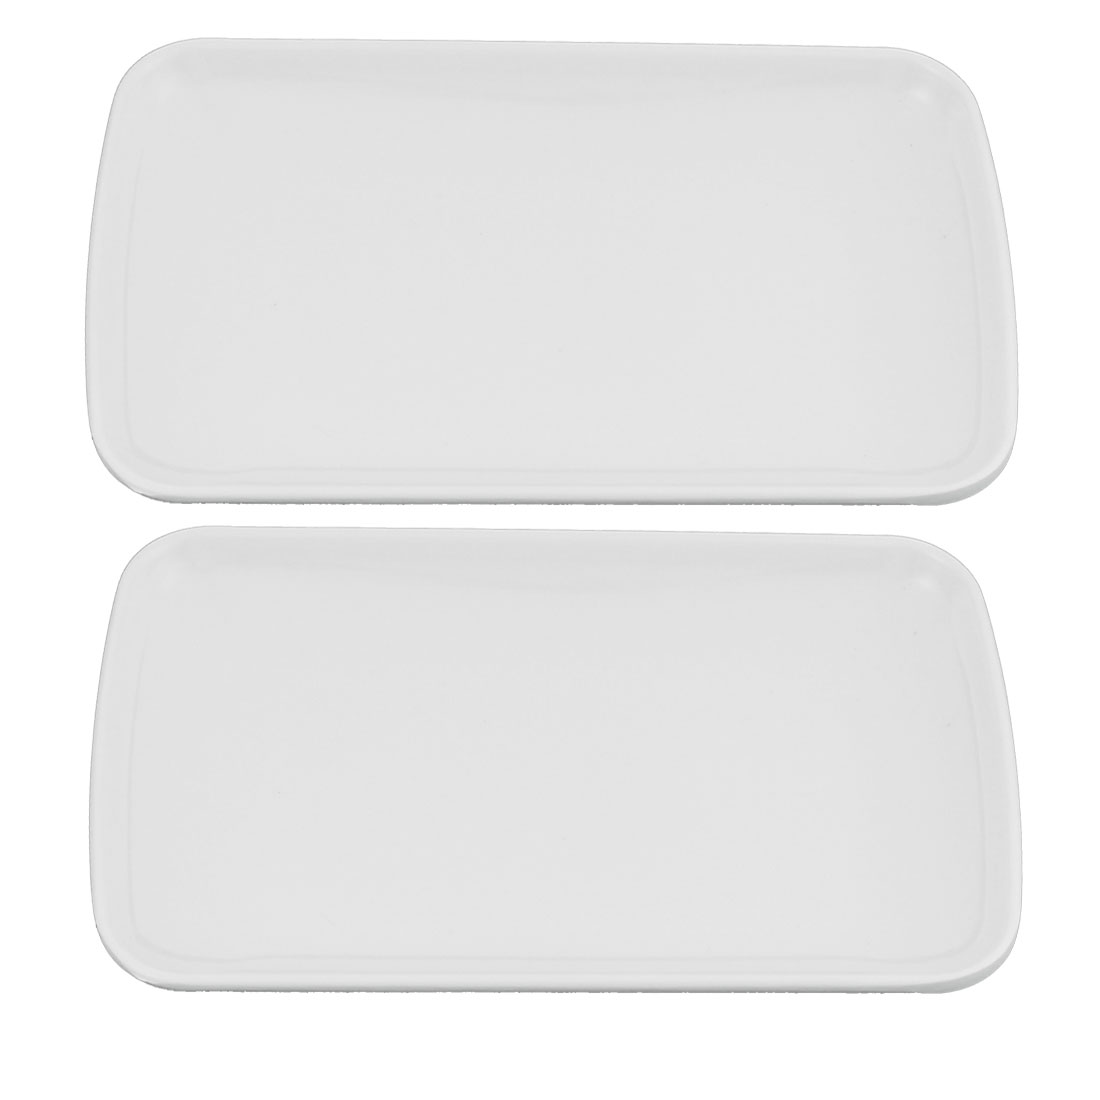 Home Restaurant Plastic Rectangle Shaped Lunch Food Dish Plate White 19cmx12cm 2 Pcs